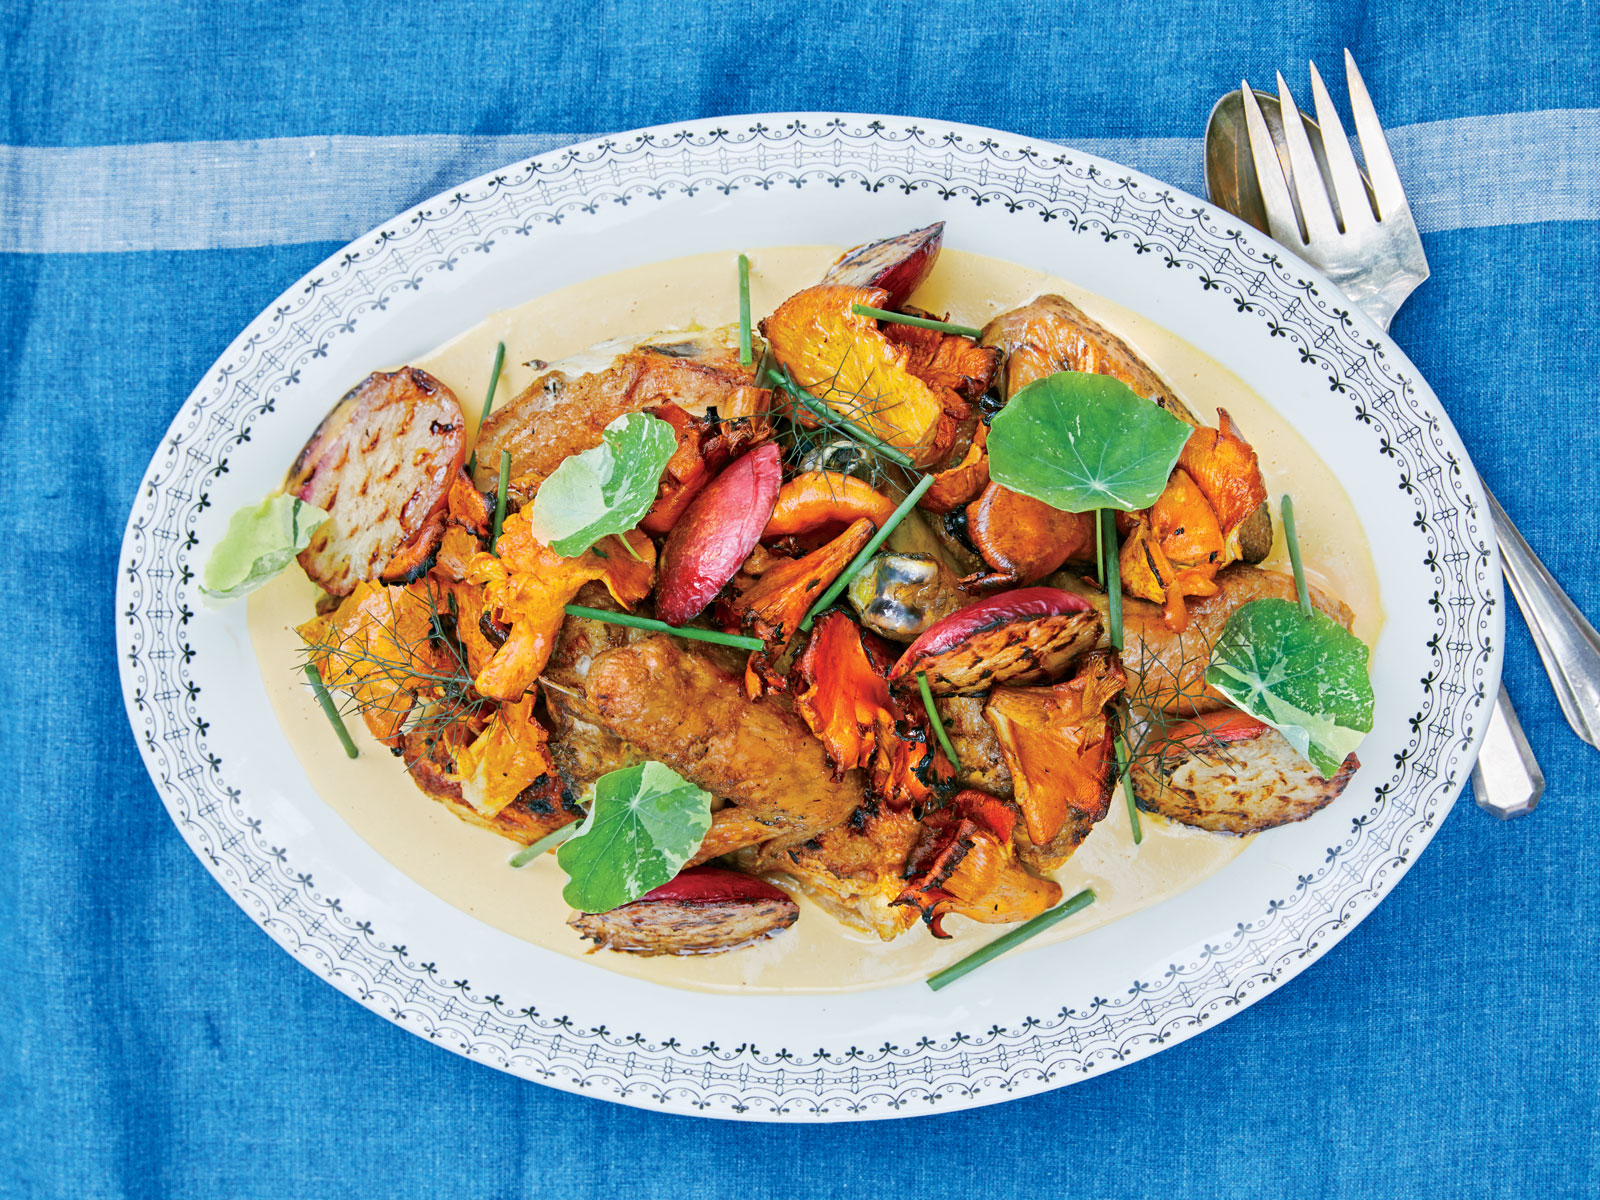 Grilled Chicken with Nectarines and Chanterelles